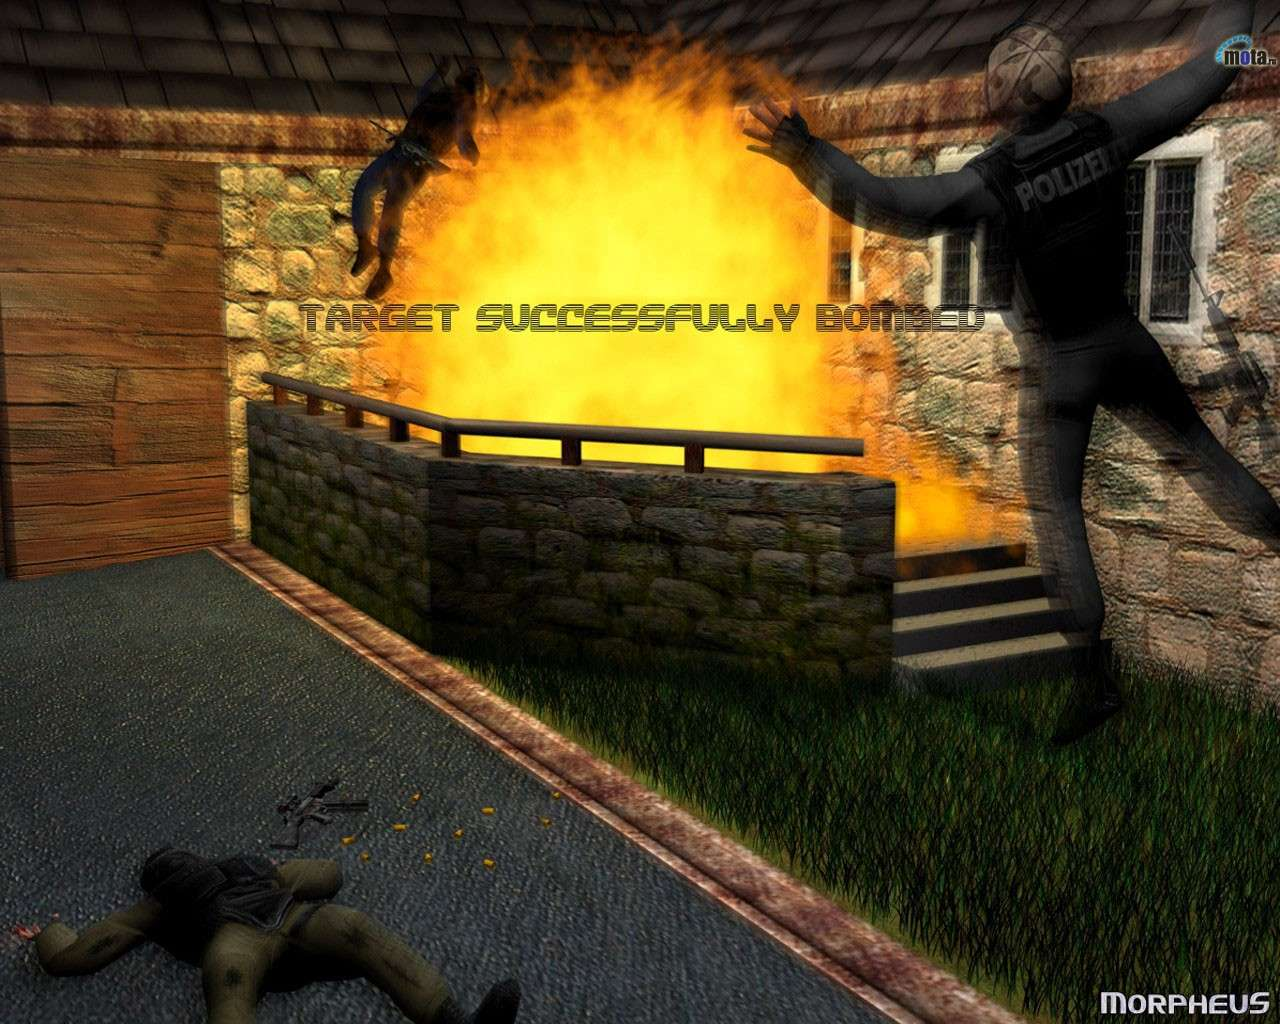 Zanimljivi screenshot-ovi iz Counter Strike Target10